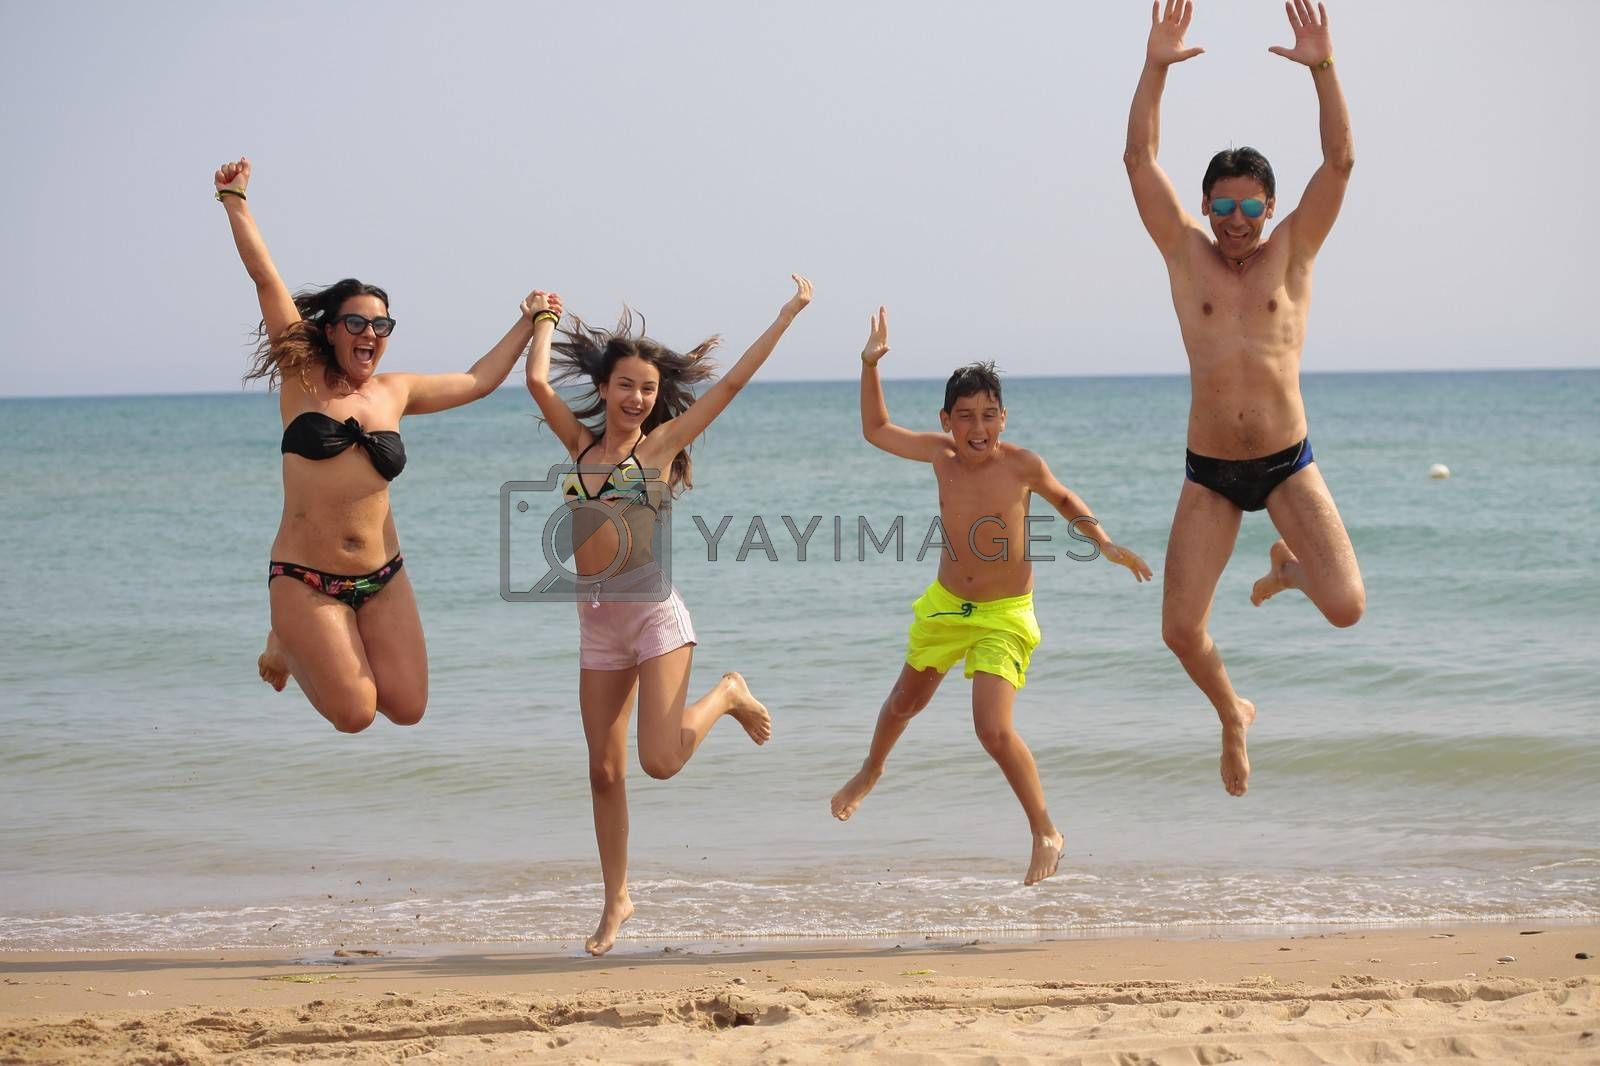 Jumping family with four people posing in seaside